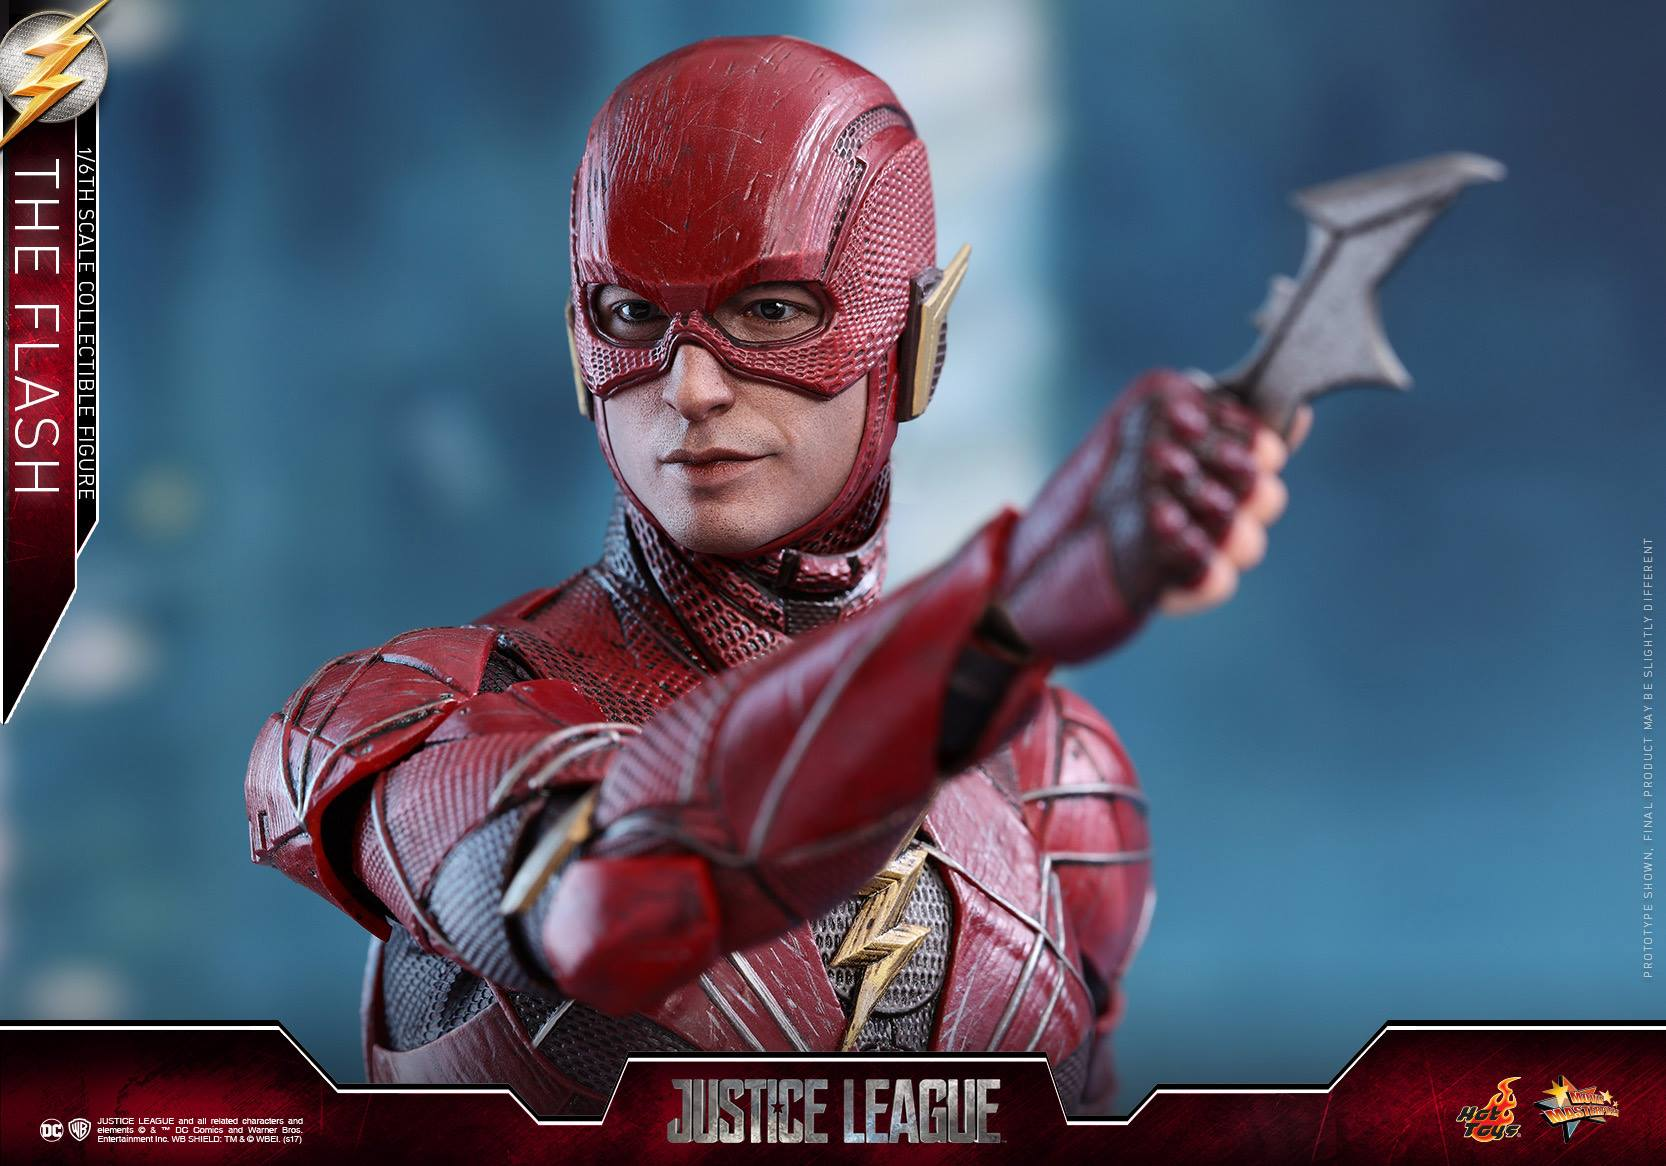 Hot-Toys-Justice-League-The-Flash-002